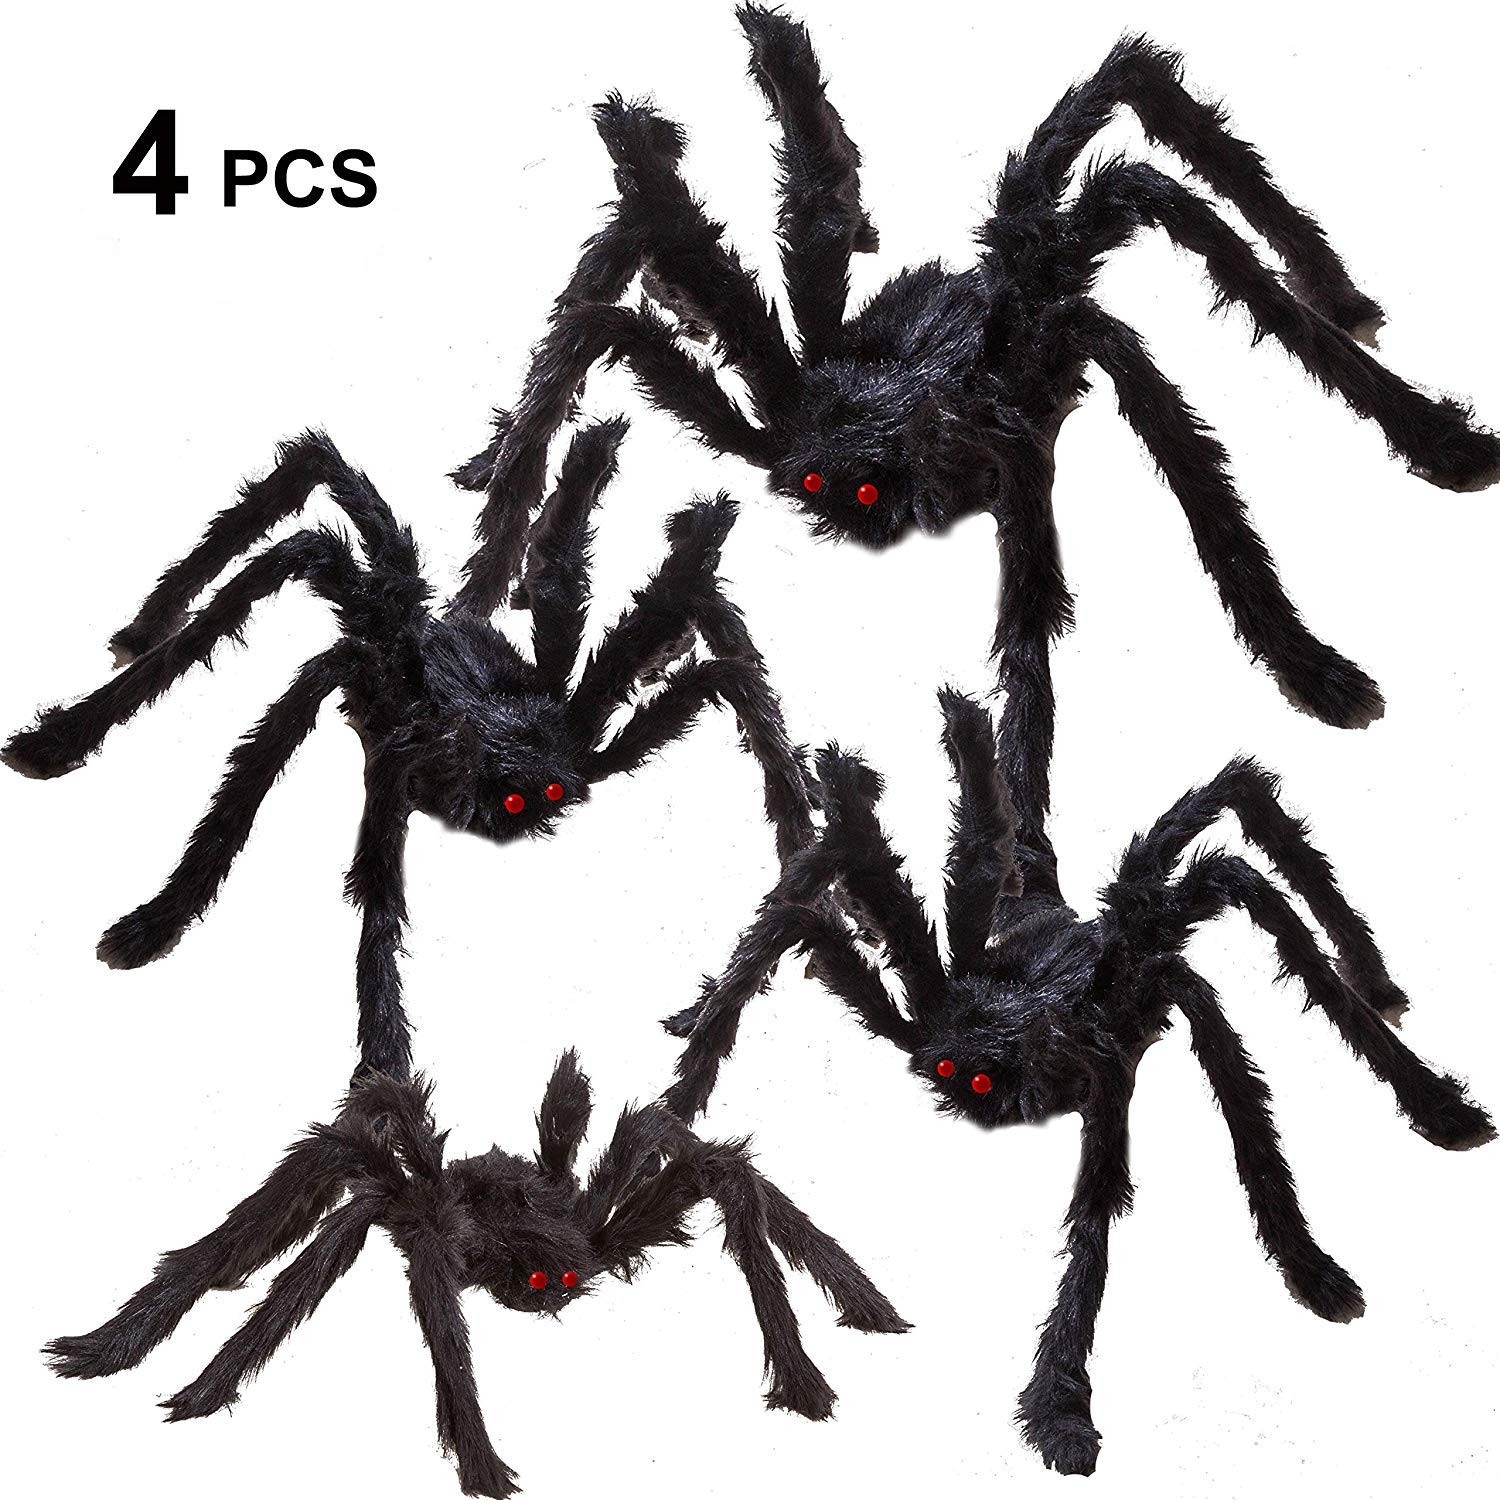 "Four Halloween Realistic Hairy Spiders Set, Valuable Halloween Props, Halloween Spider Set for Indoor and Outside Decorations (One 47.25"", Two 35.5"", and One 29.5"")"